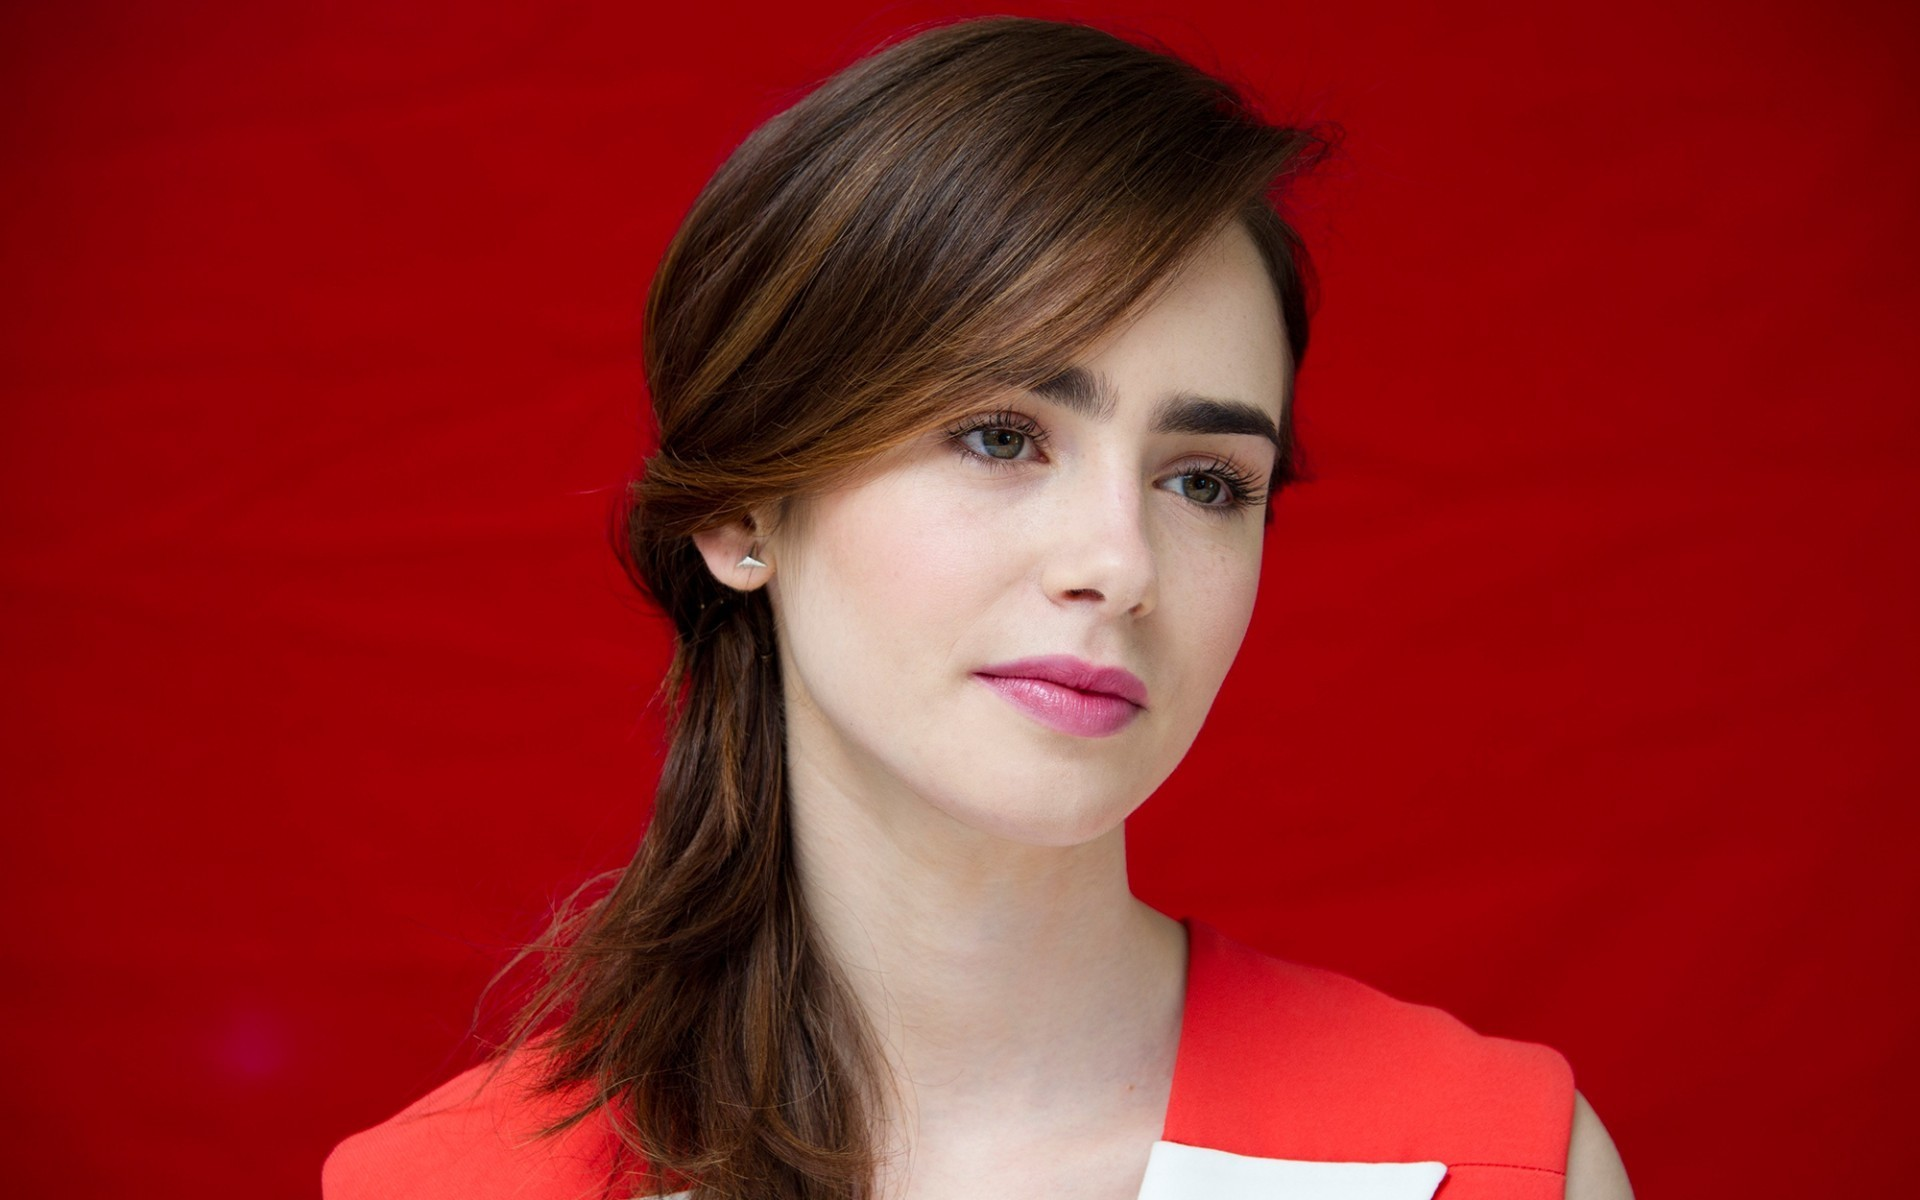 Lily Collins Wallpaper